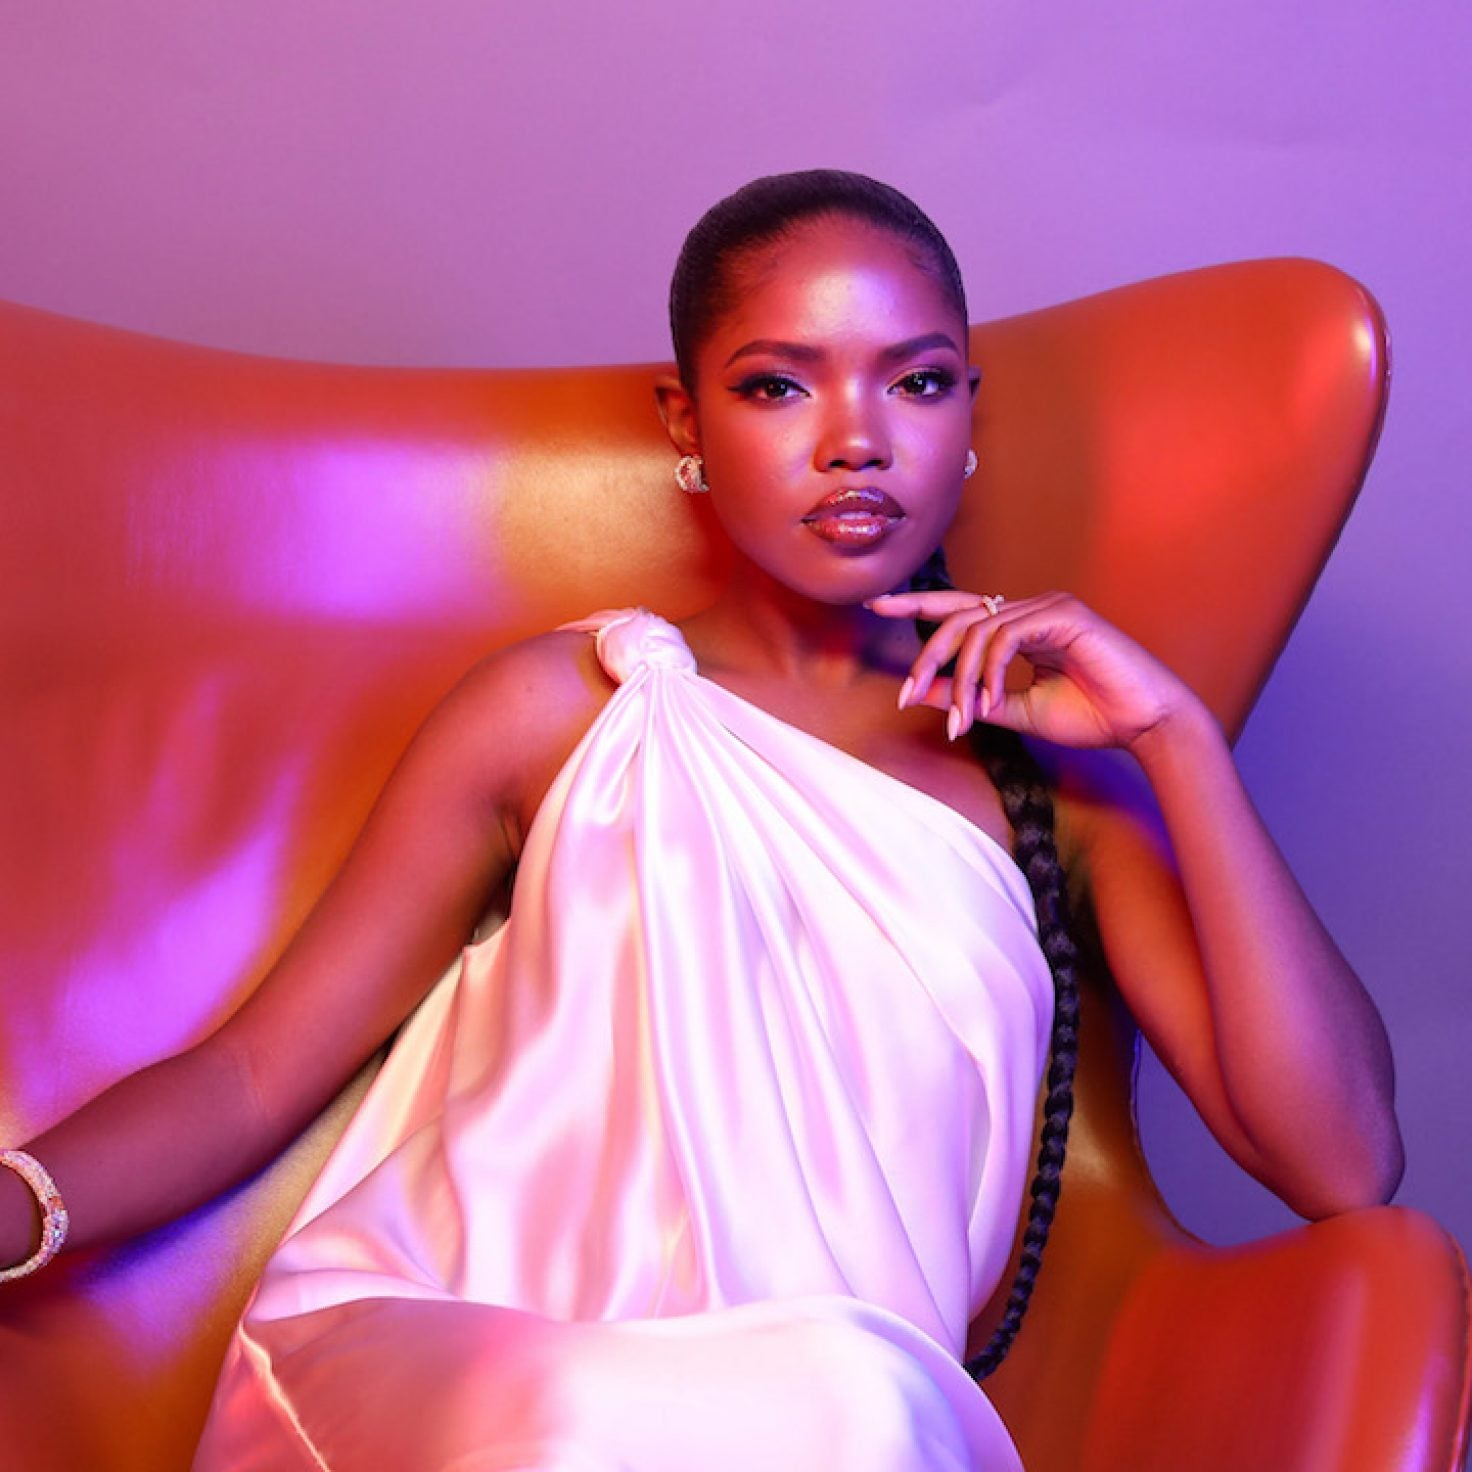 Why Ryan Destiny Will 'Always Fight' To Make Sure Black Women Feel Seen